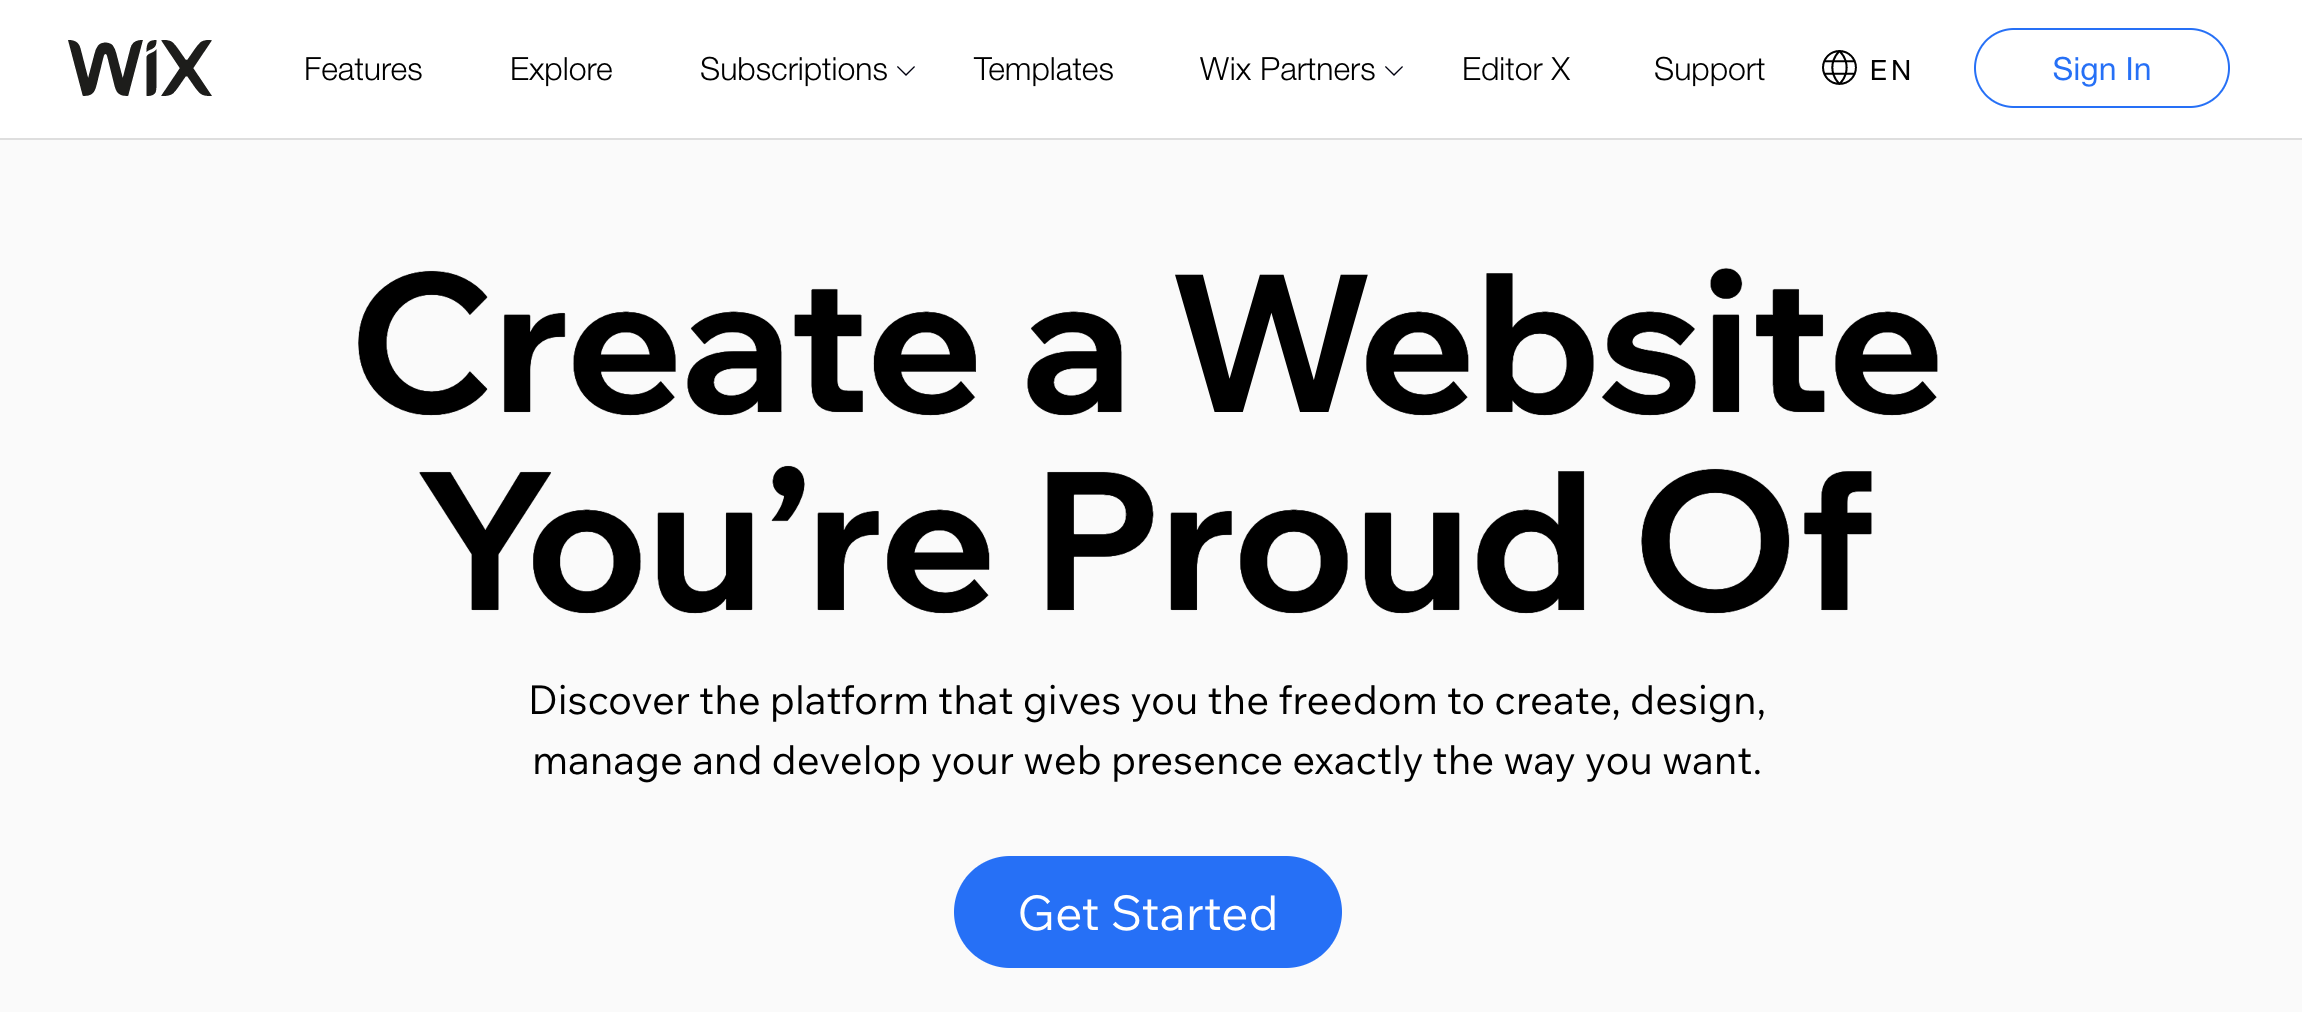 Wix website building software landing page review